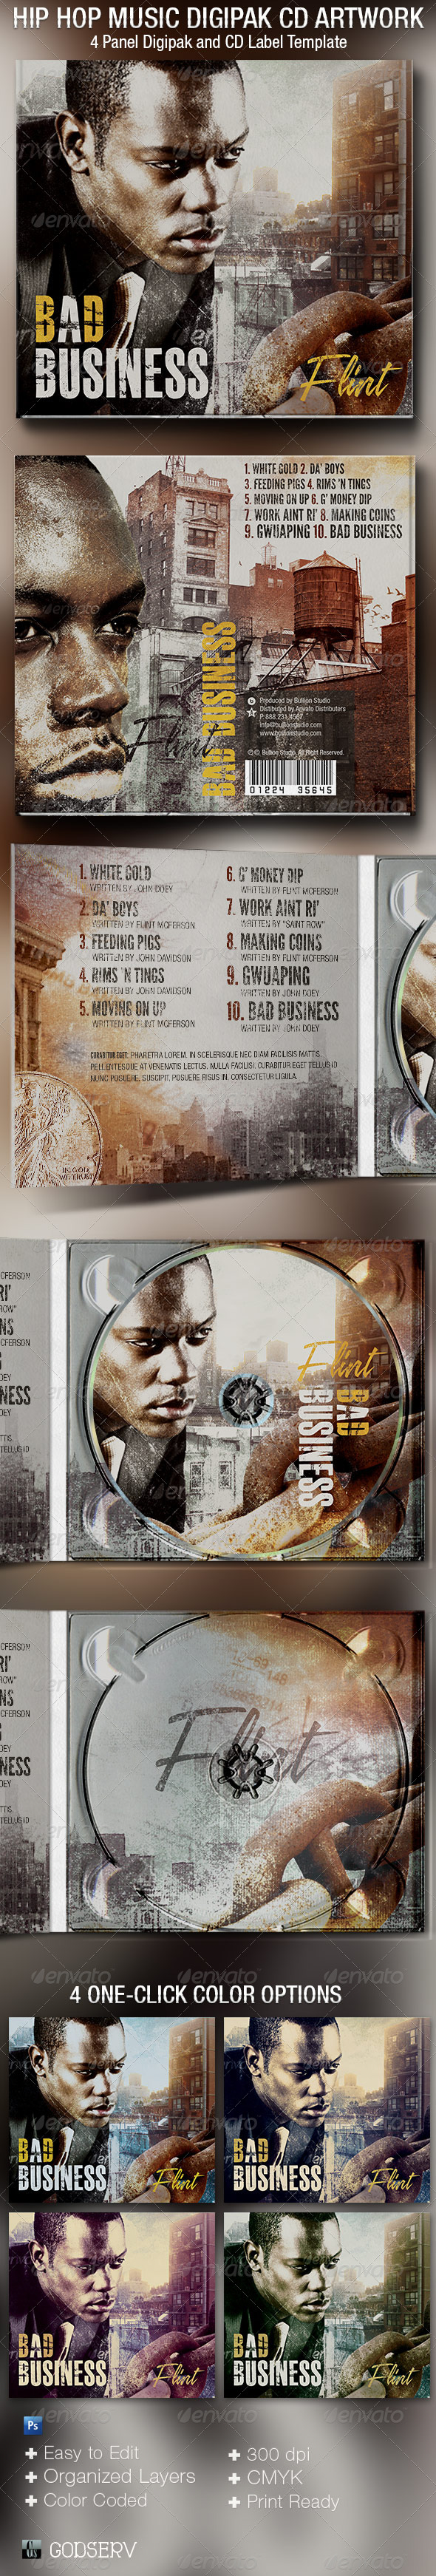 GraphicRiver Hip Hop 4 Panel Digipak CD Artwork Template 5417469